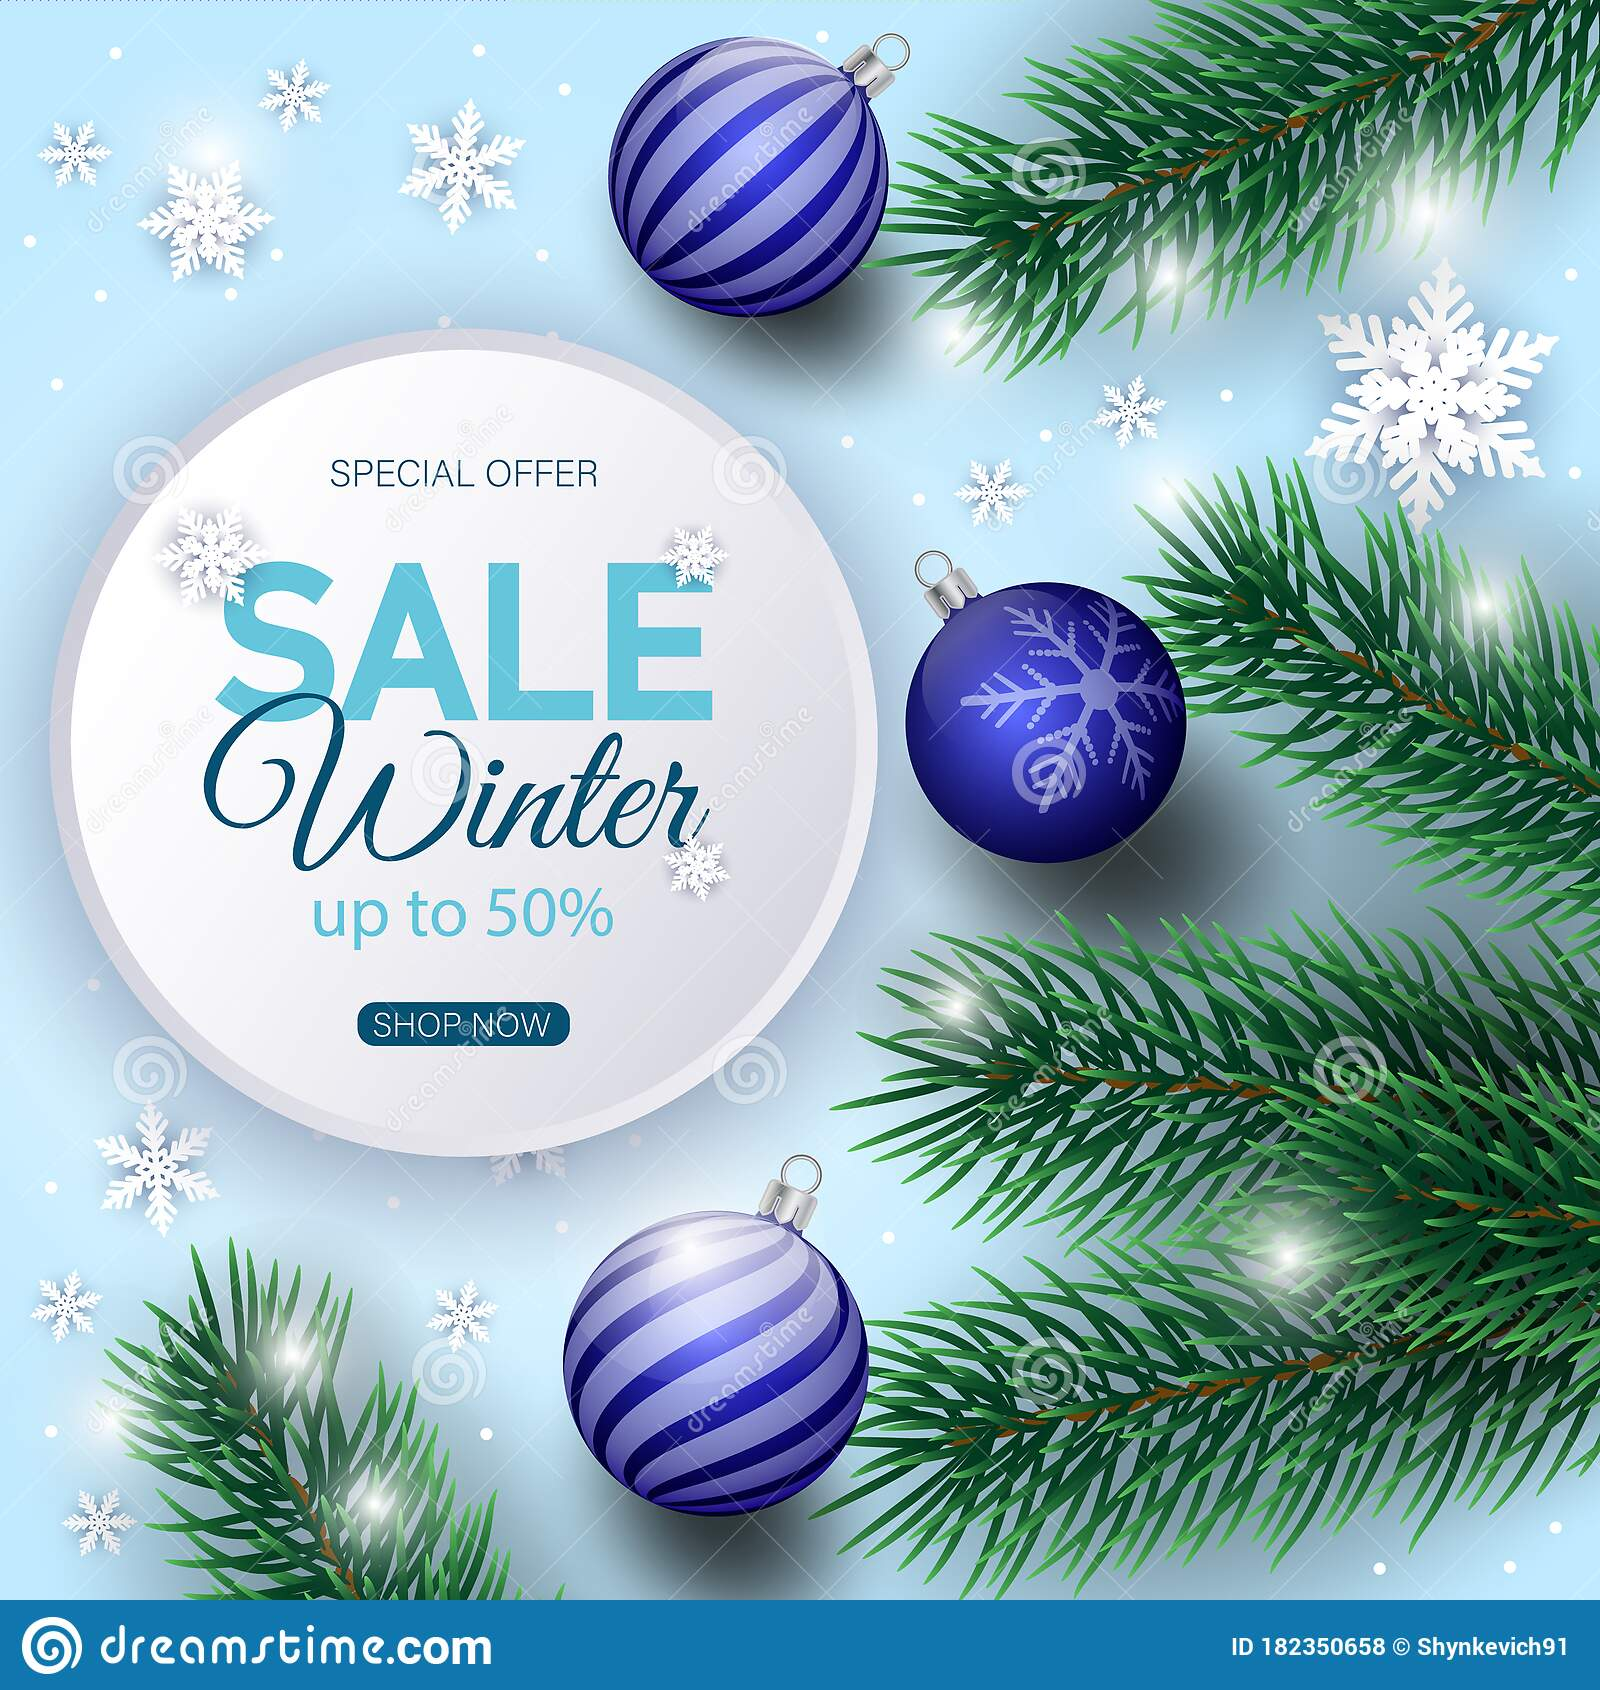 Winter Sale Banner Decorated With Christmas Tree Branches And Snow Stock Vector Illustration Of Season Decoration 182350658